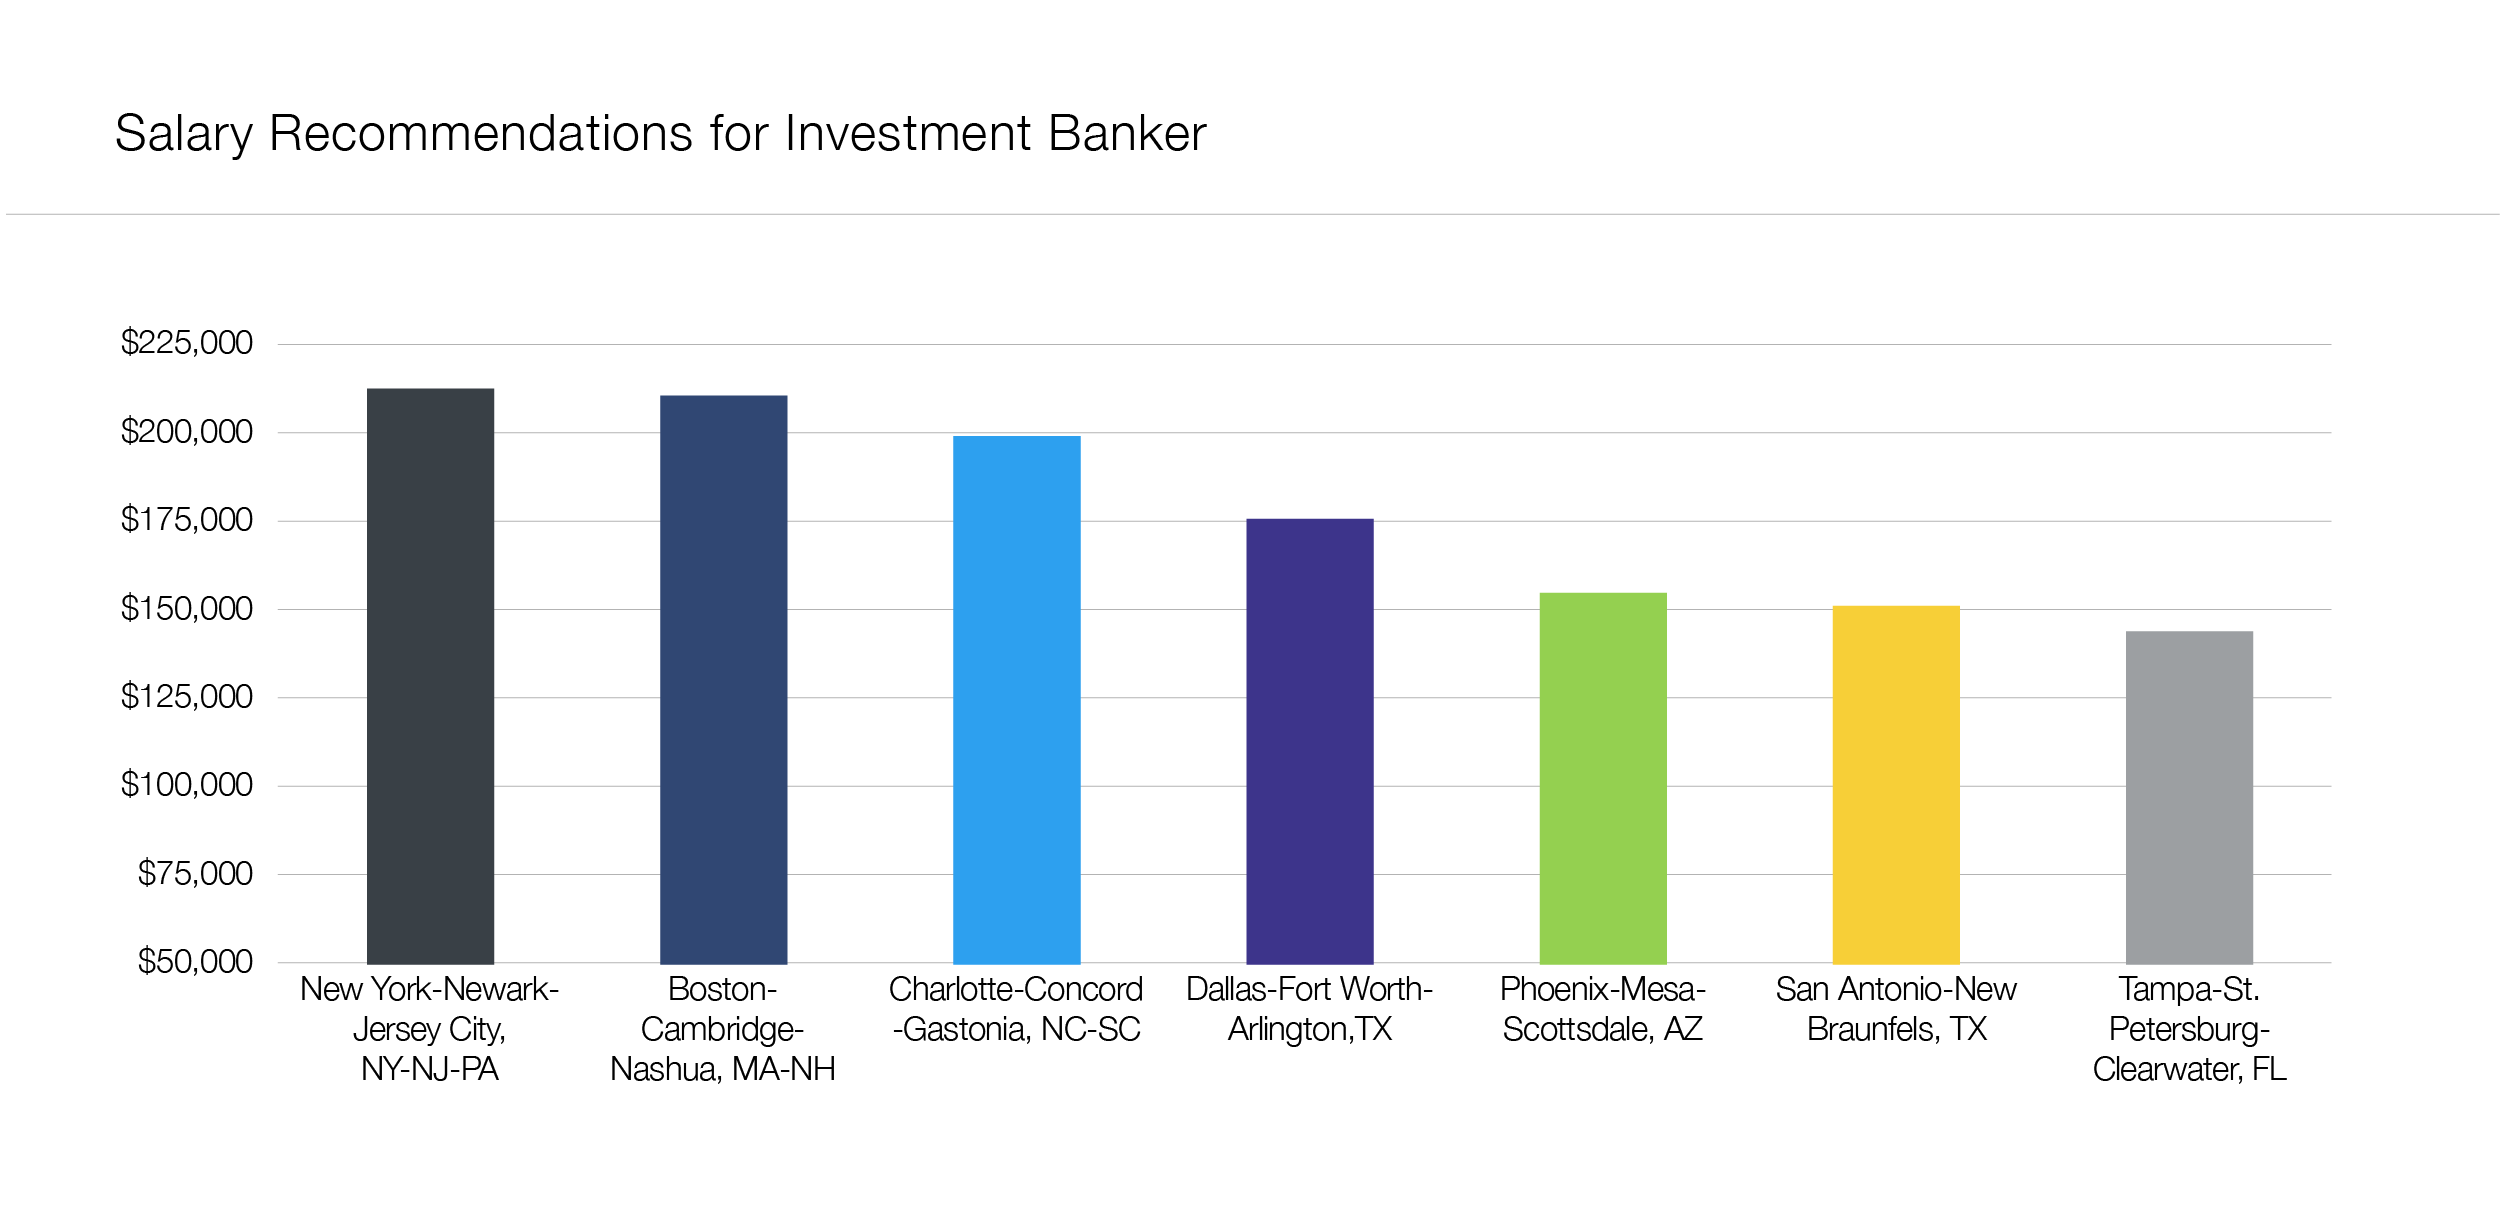 Recommended salaries for investment banker